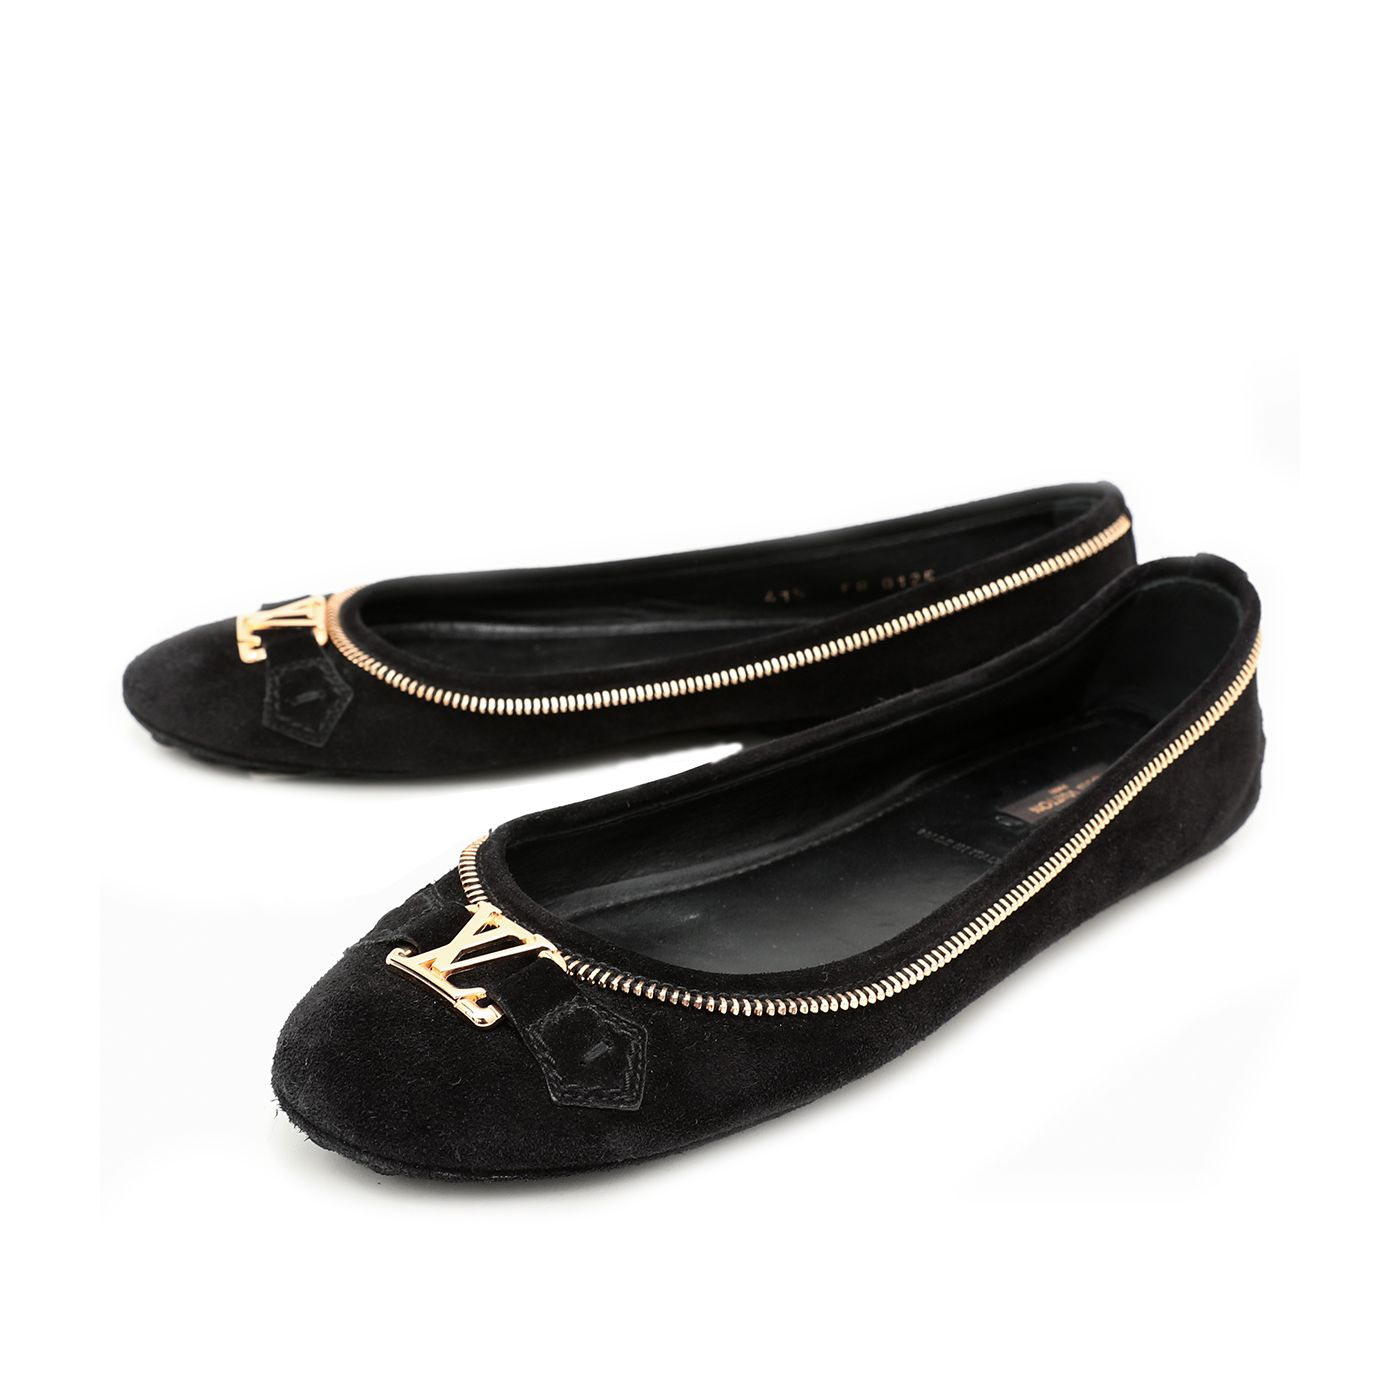 Louis Vuitton Black Suede Oxford Zip Edges Ballerina Flats 41.5